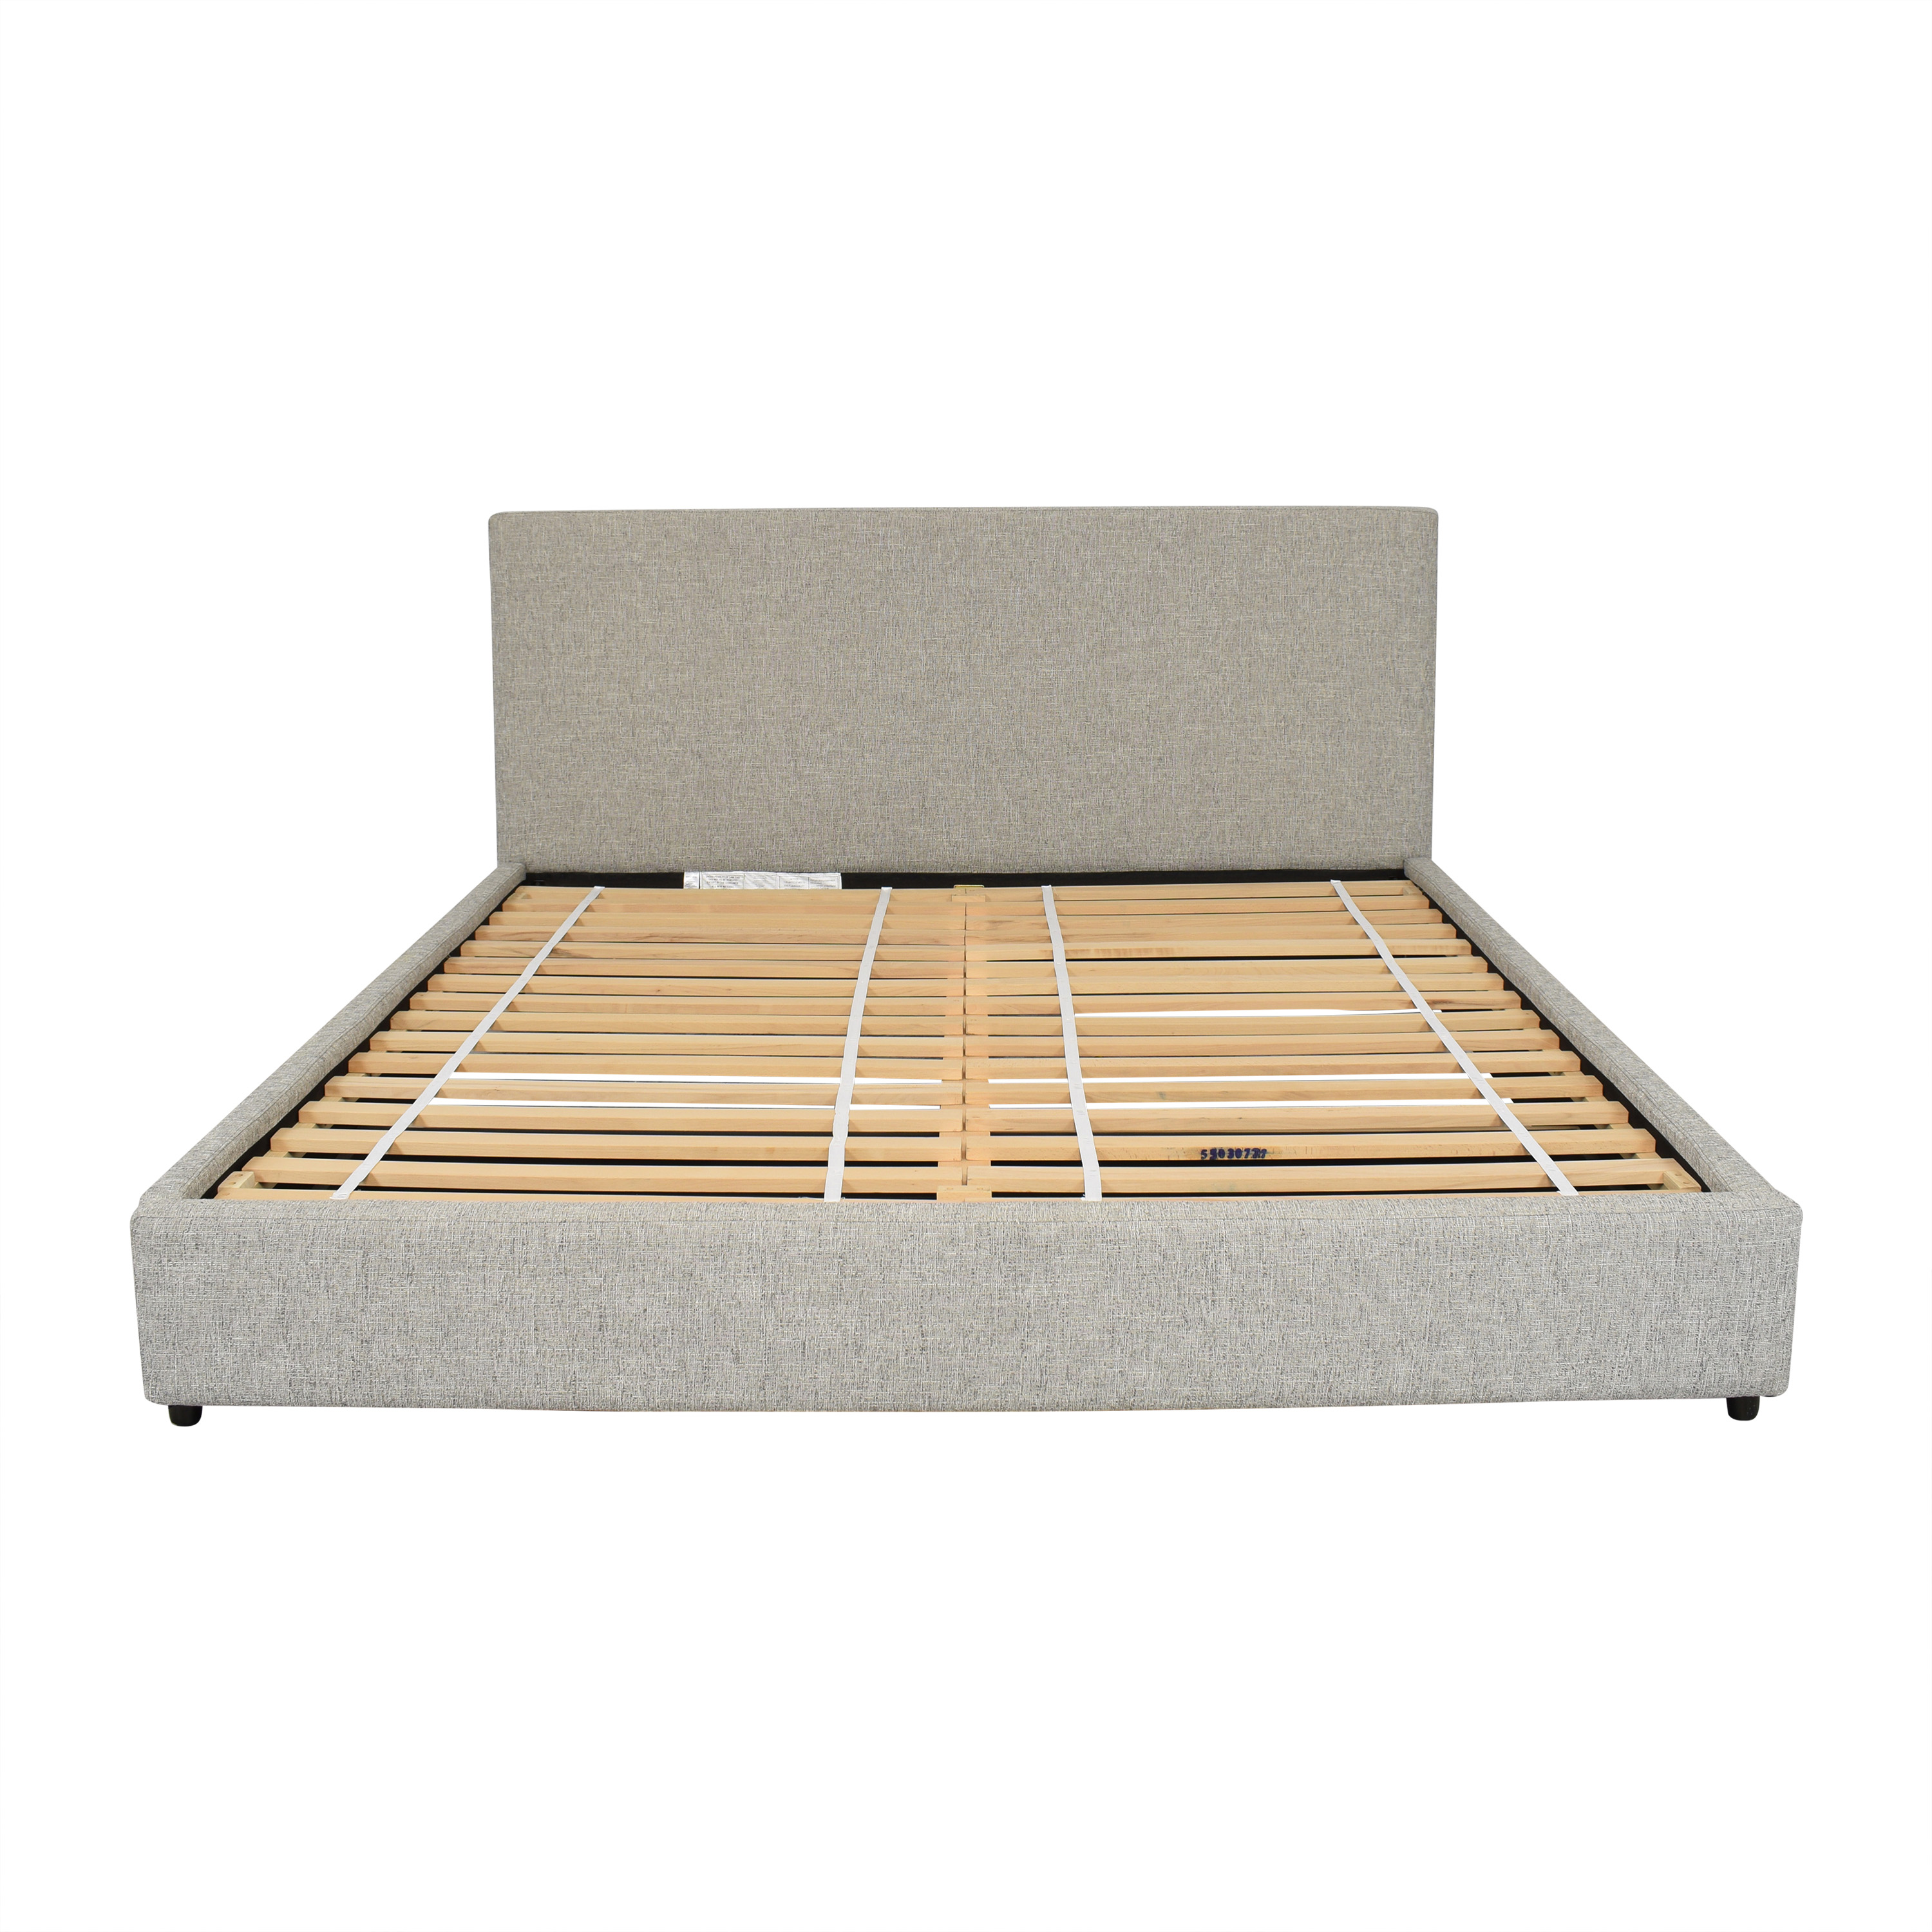 West Elm West Elm Contemporary Upholstered Storage King Bed dimensions